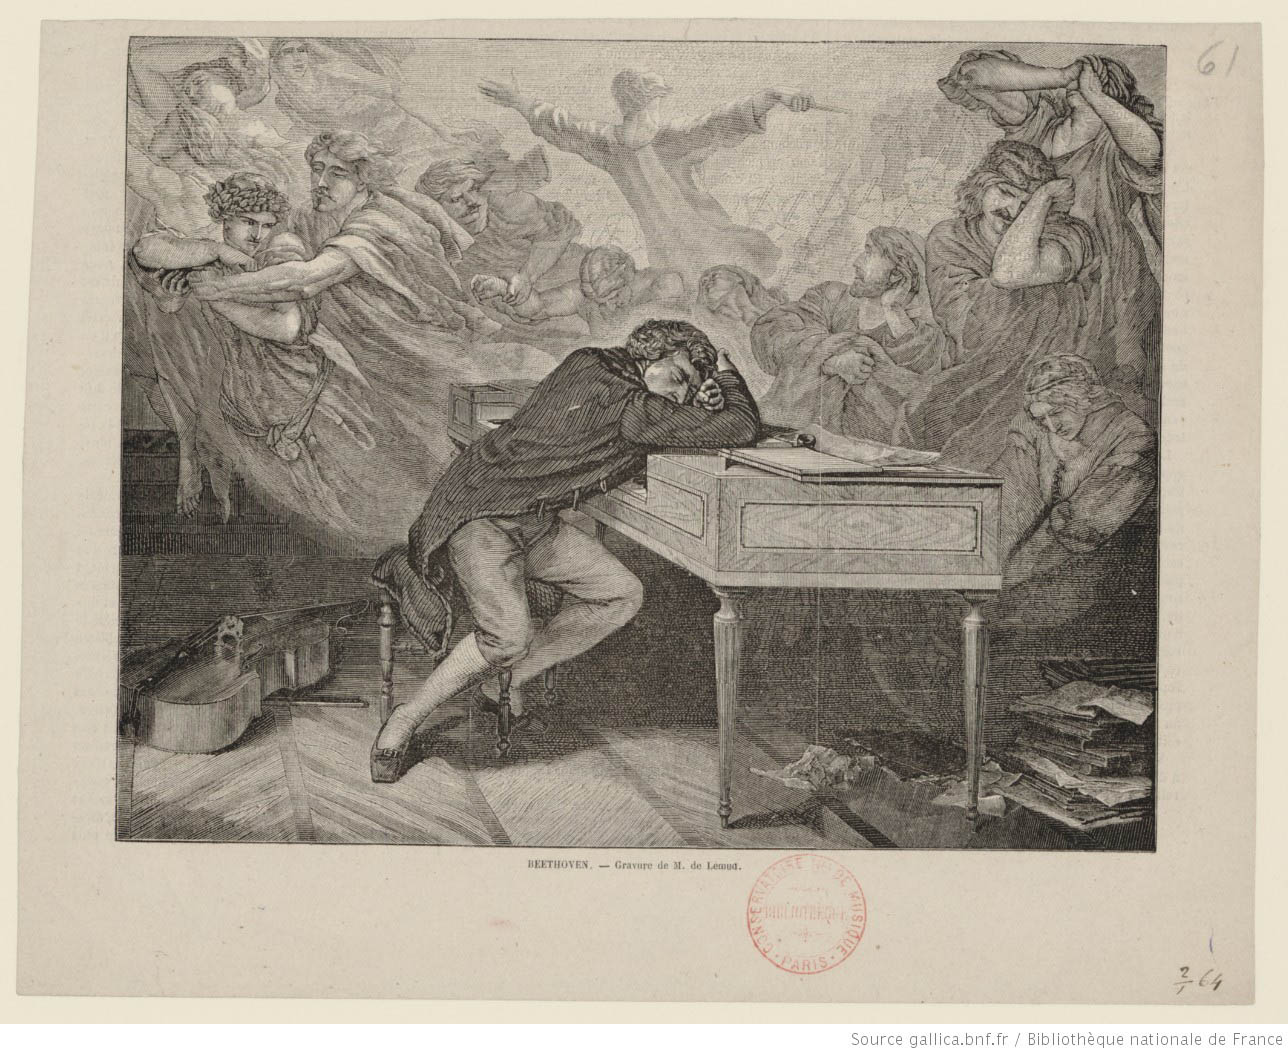 Beethoven slumped over a desk, and having fevered and unsettling visions.